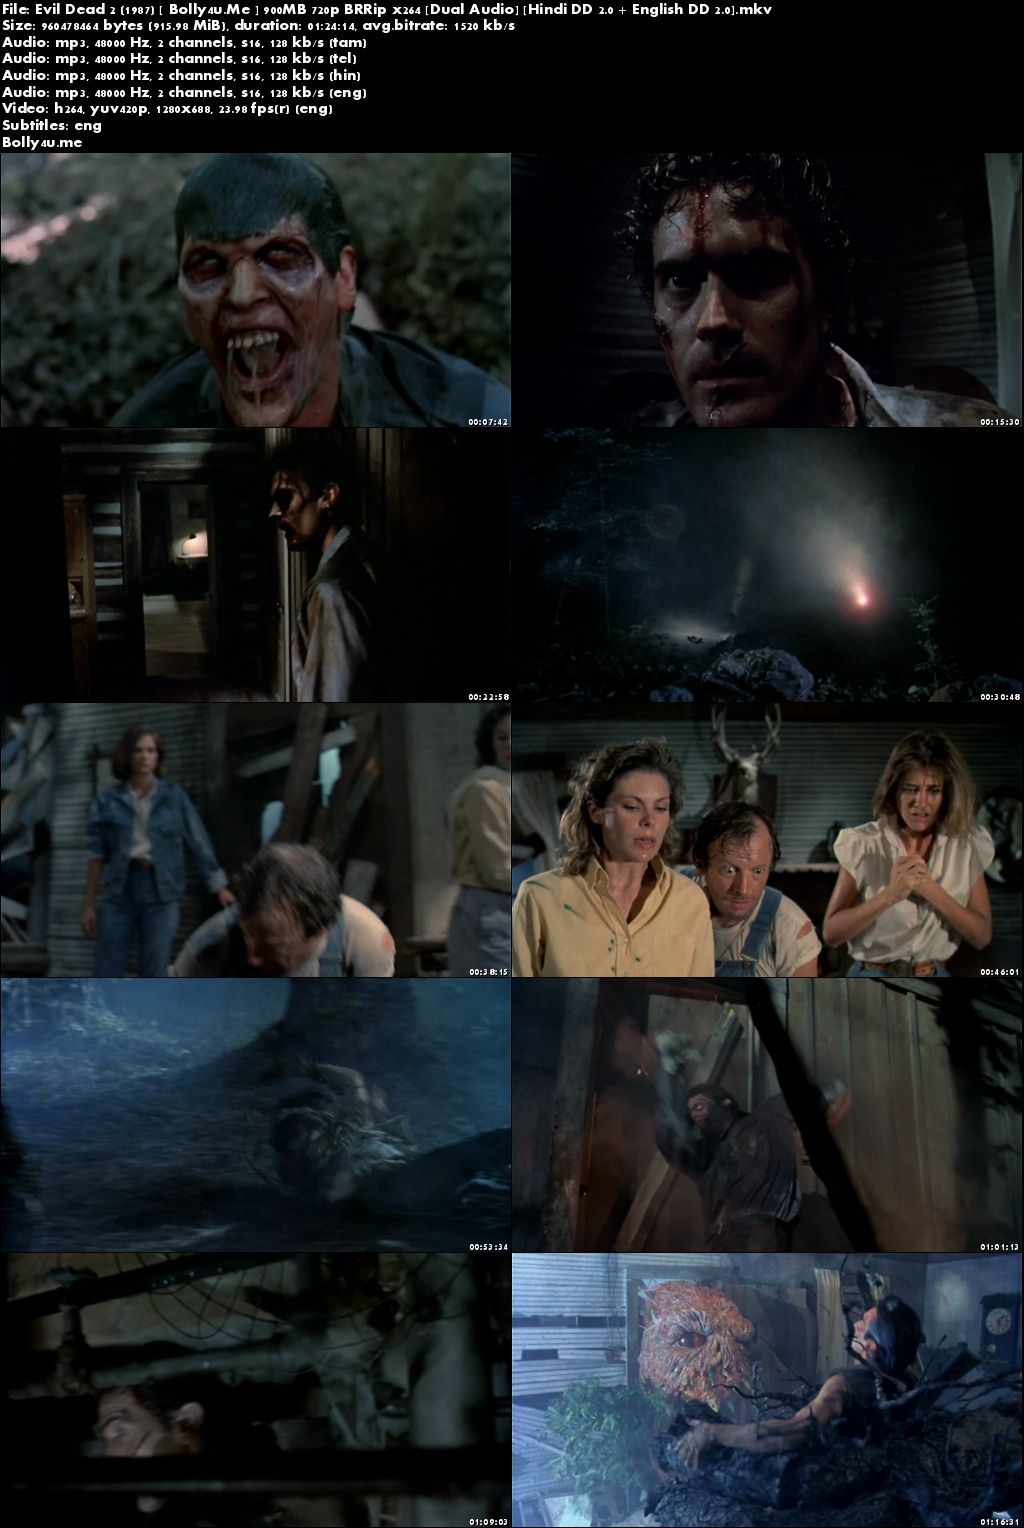 Evil Dead 2 1987 BRRip 900MB Hindi Dual Audio 720p Download